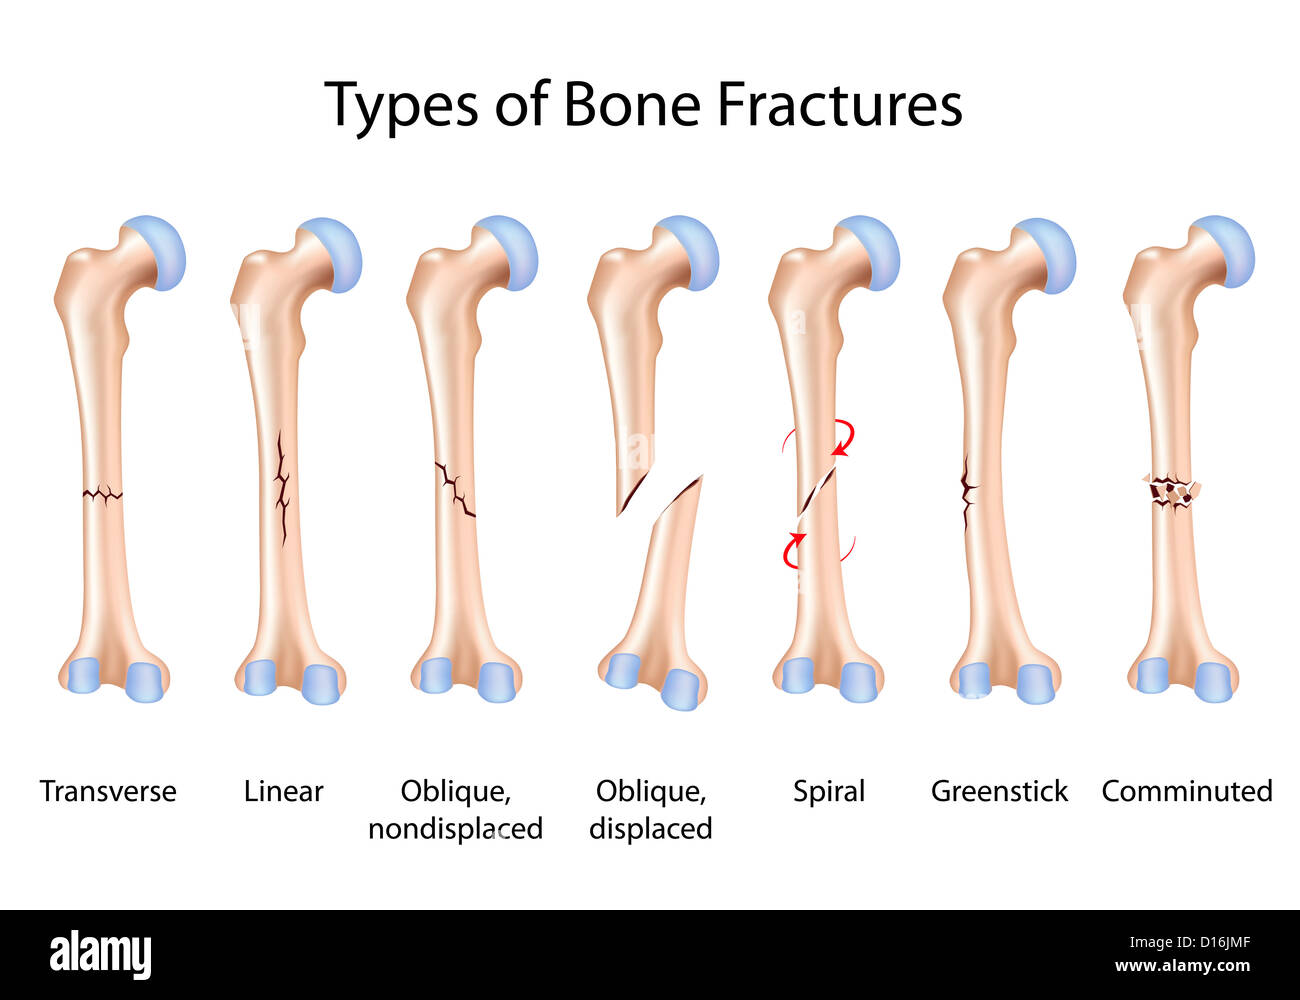 Types Of Bone Fractures Stock Photo 52392159 Alamy